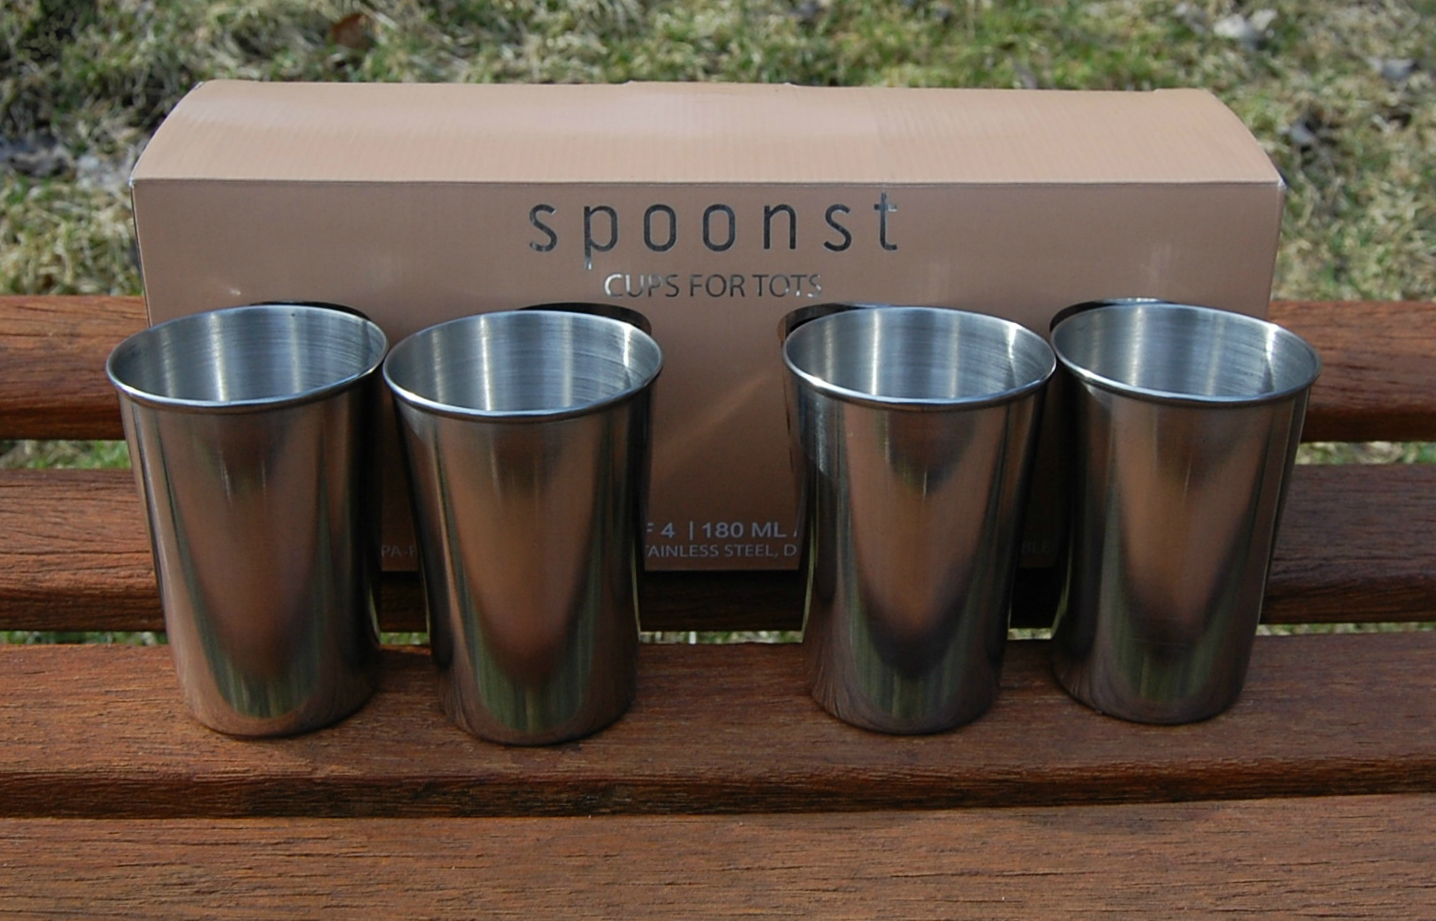 4cee3122740 Spoonst Stainless Steel Cups for Kids and Toddlers, 6 oz. (4 pack) | Cups  for Tots